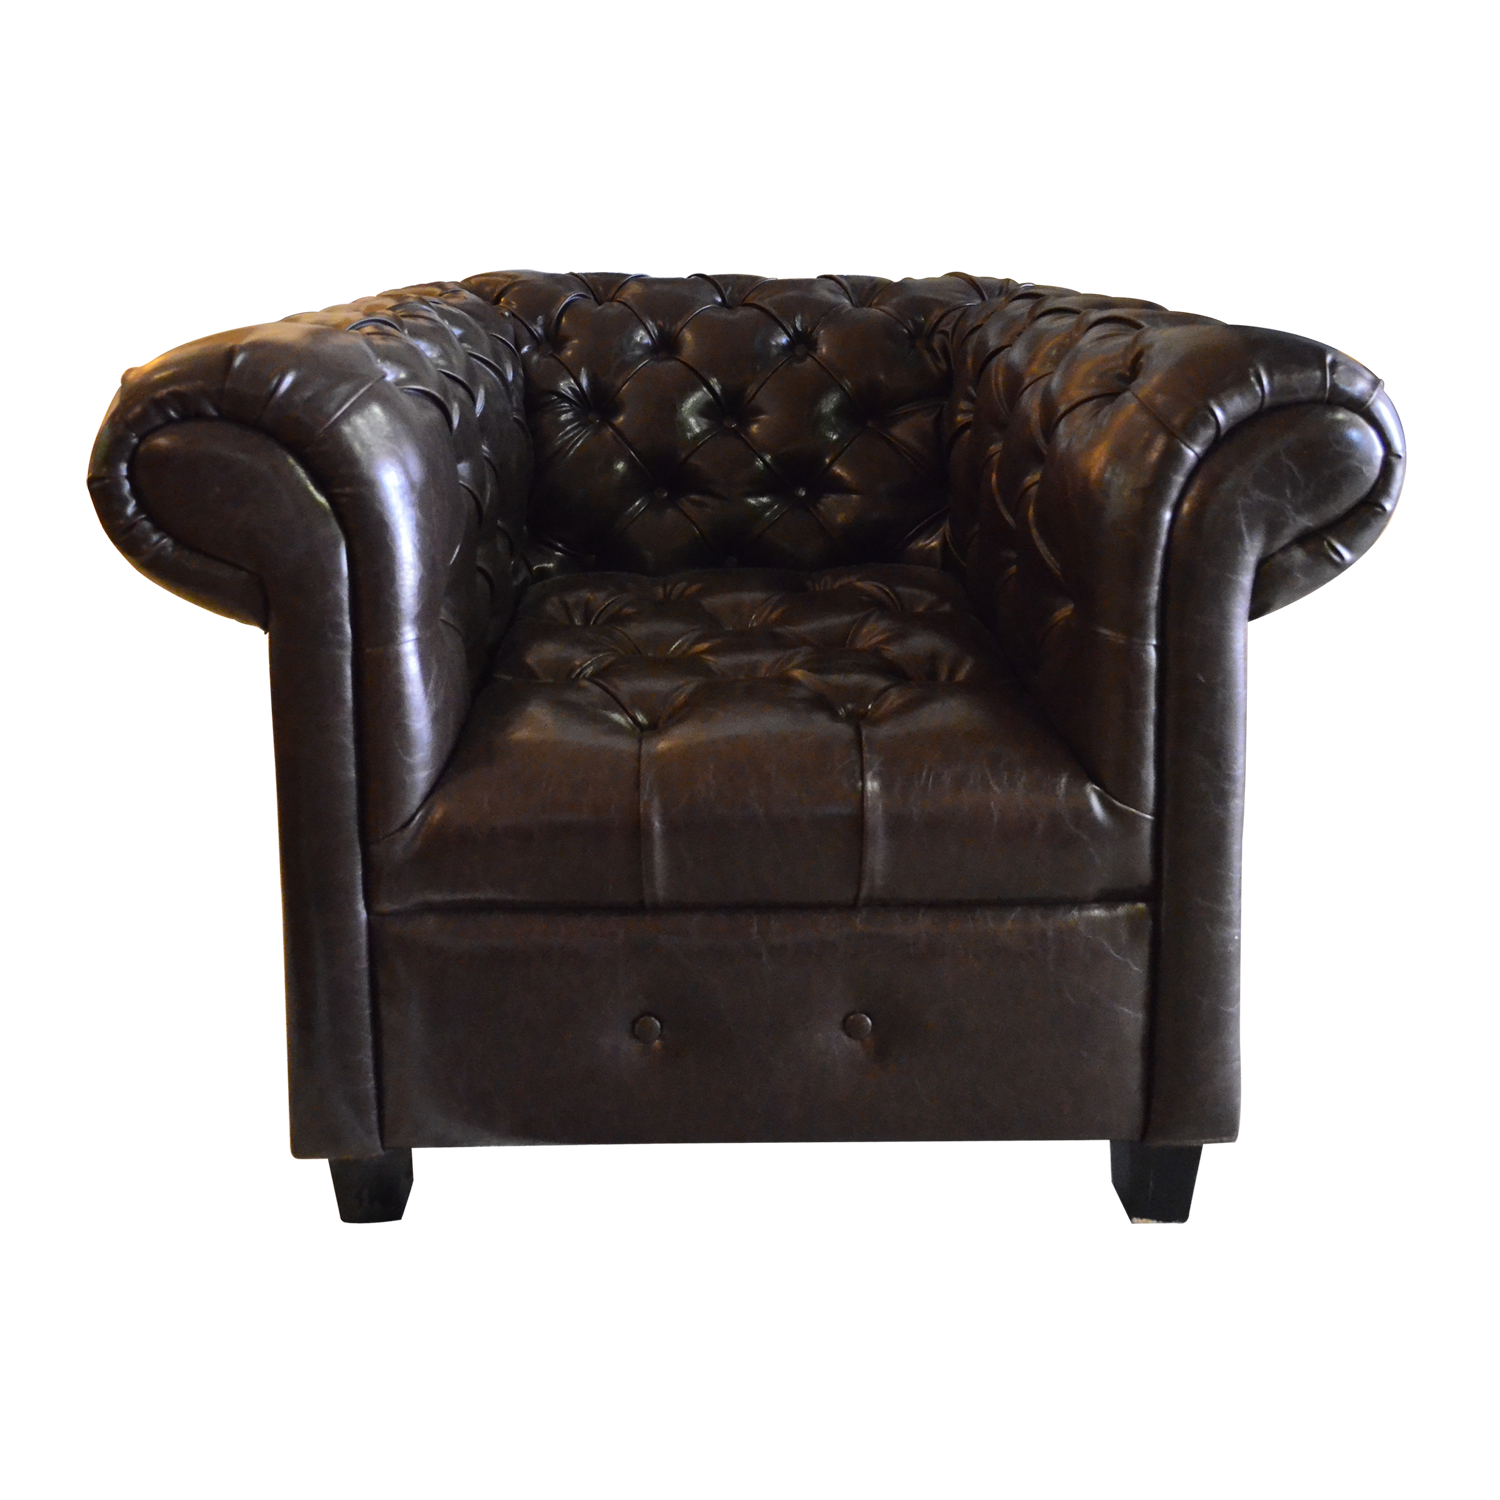 Astounding 1 Seater Sofa Chesterfield Enjoy Your Time Sitting In Lamtechconsult Wood Chair Design Ideas Lamtechconsultcom